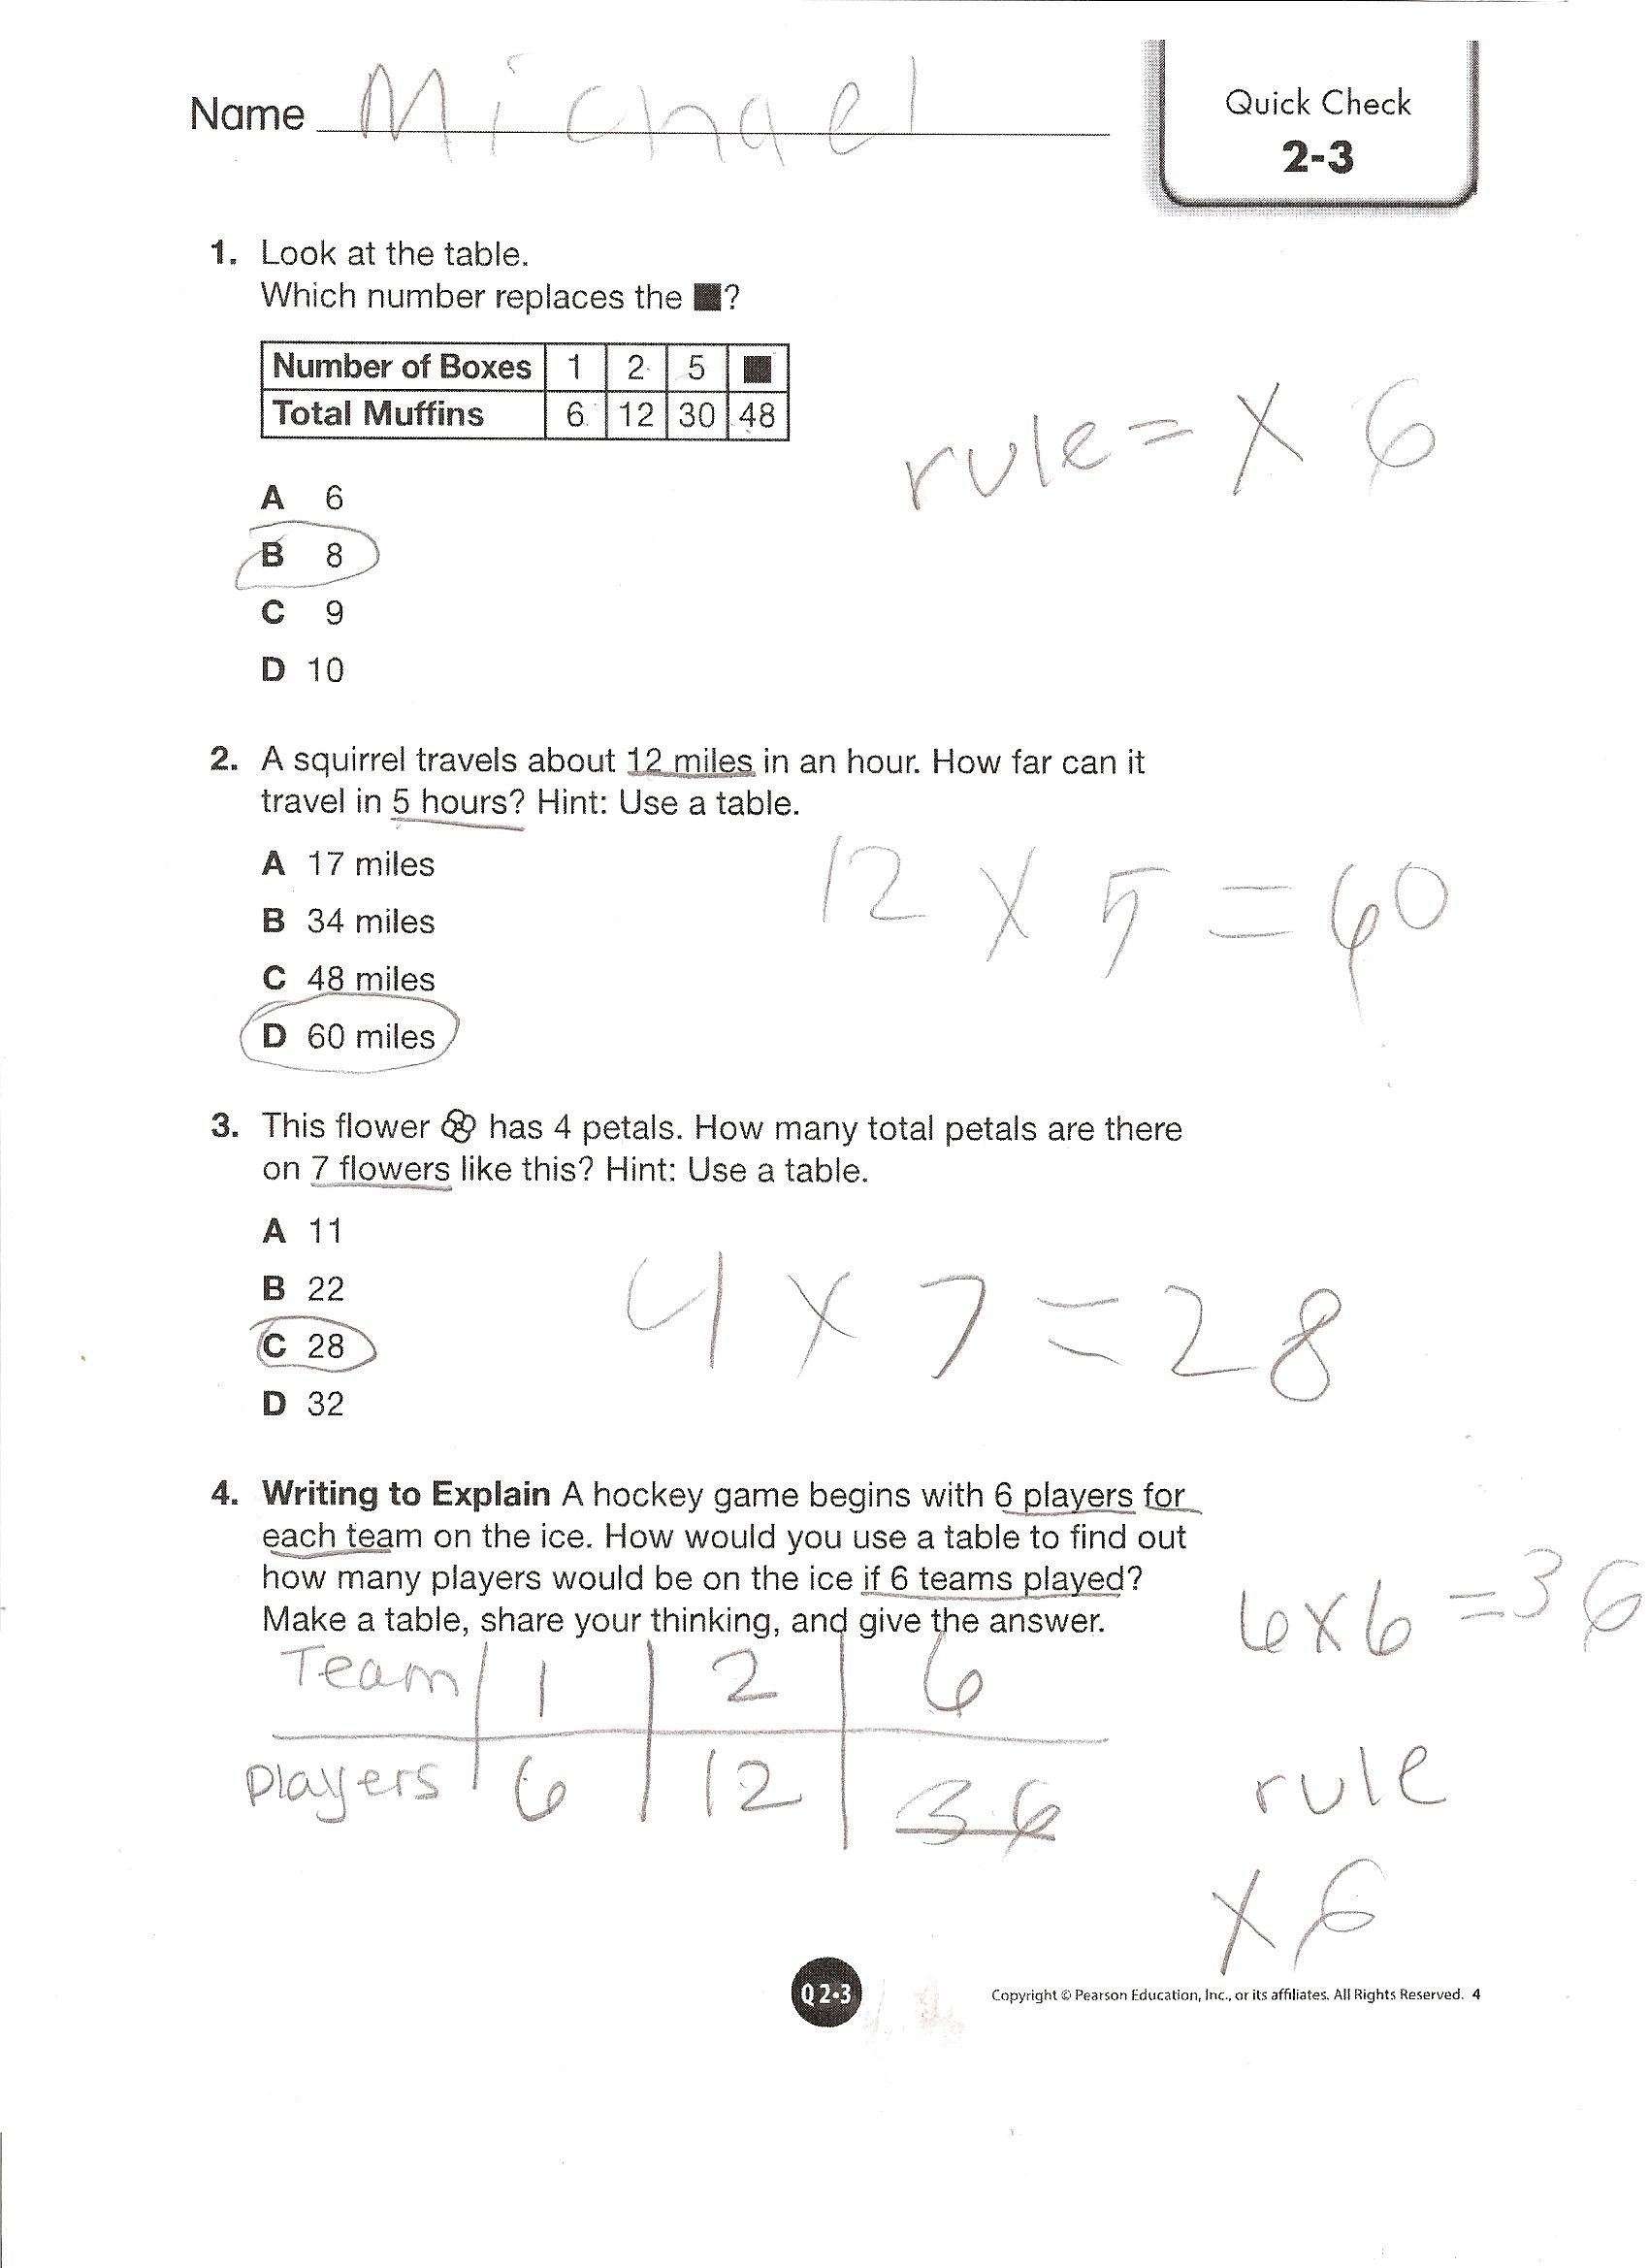 Envision Math Grade 4 Topic 2 3 Quick Check